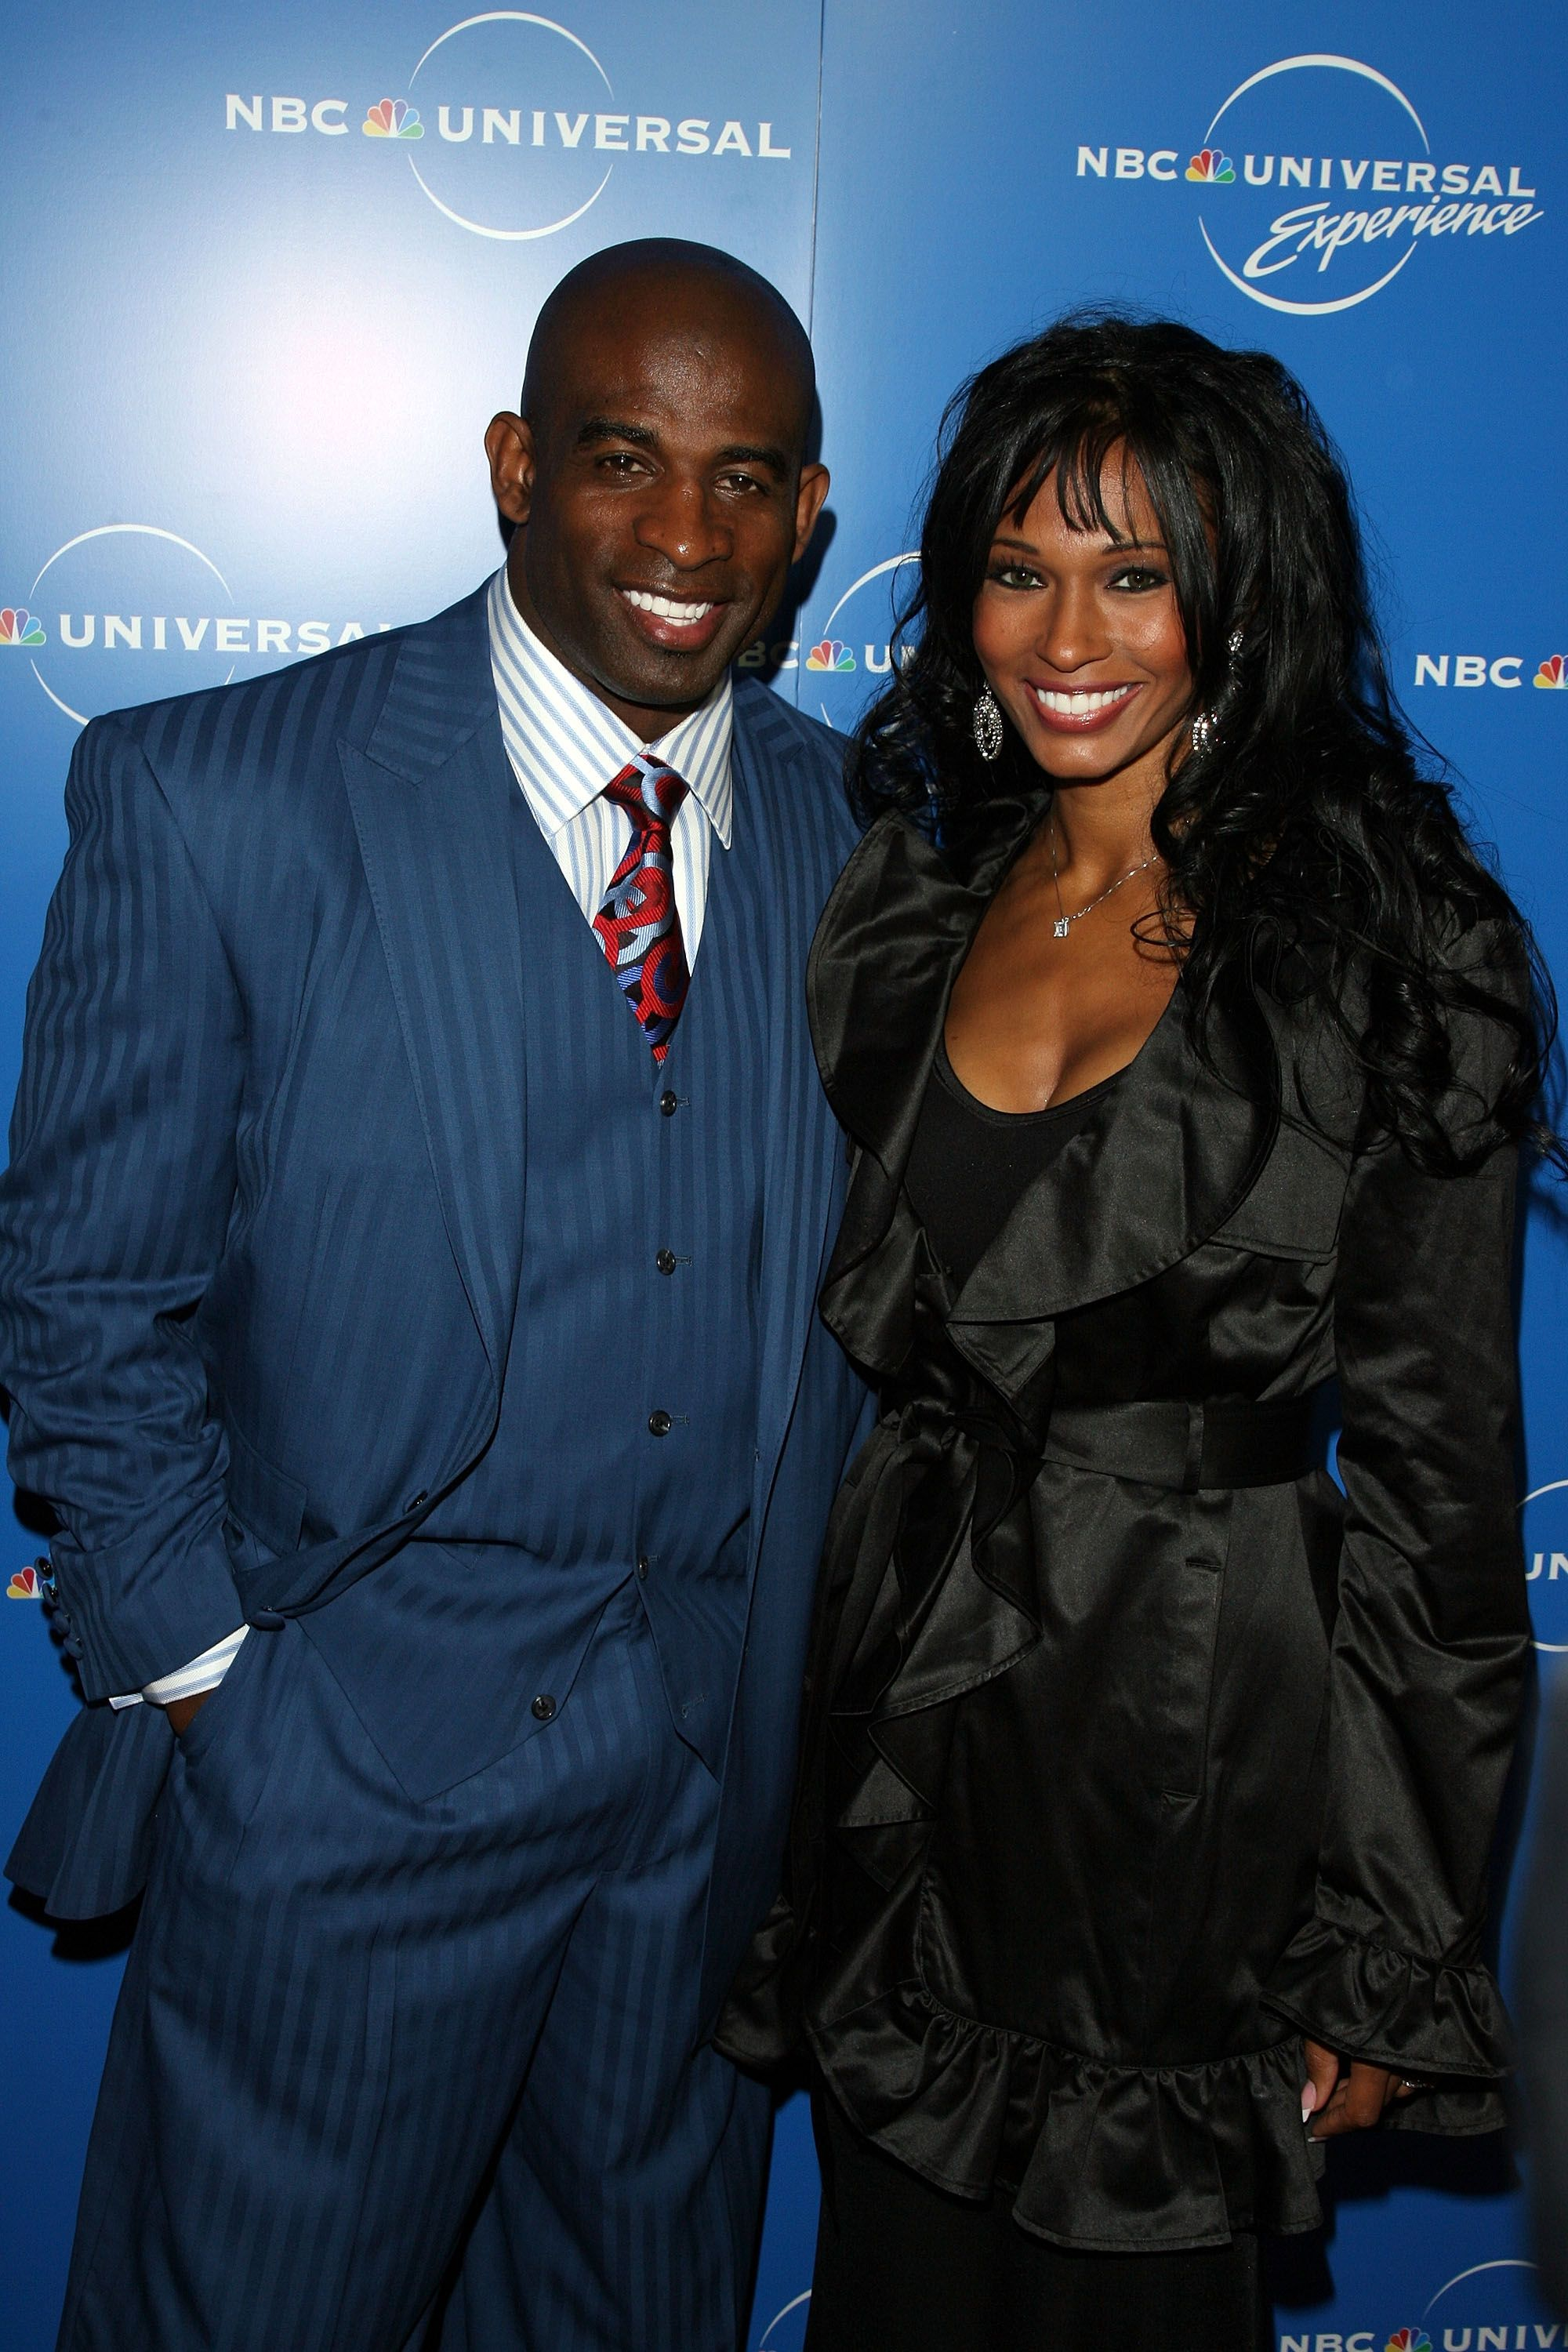 Deion Sanders and Pilar Biggers at NBC Universal Experience at Rockefeller Center on May 12, 2008 in New York City. | Photo: Getty Images